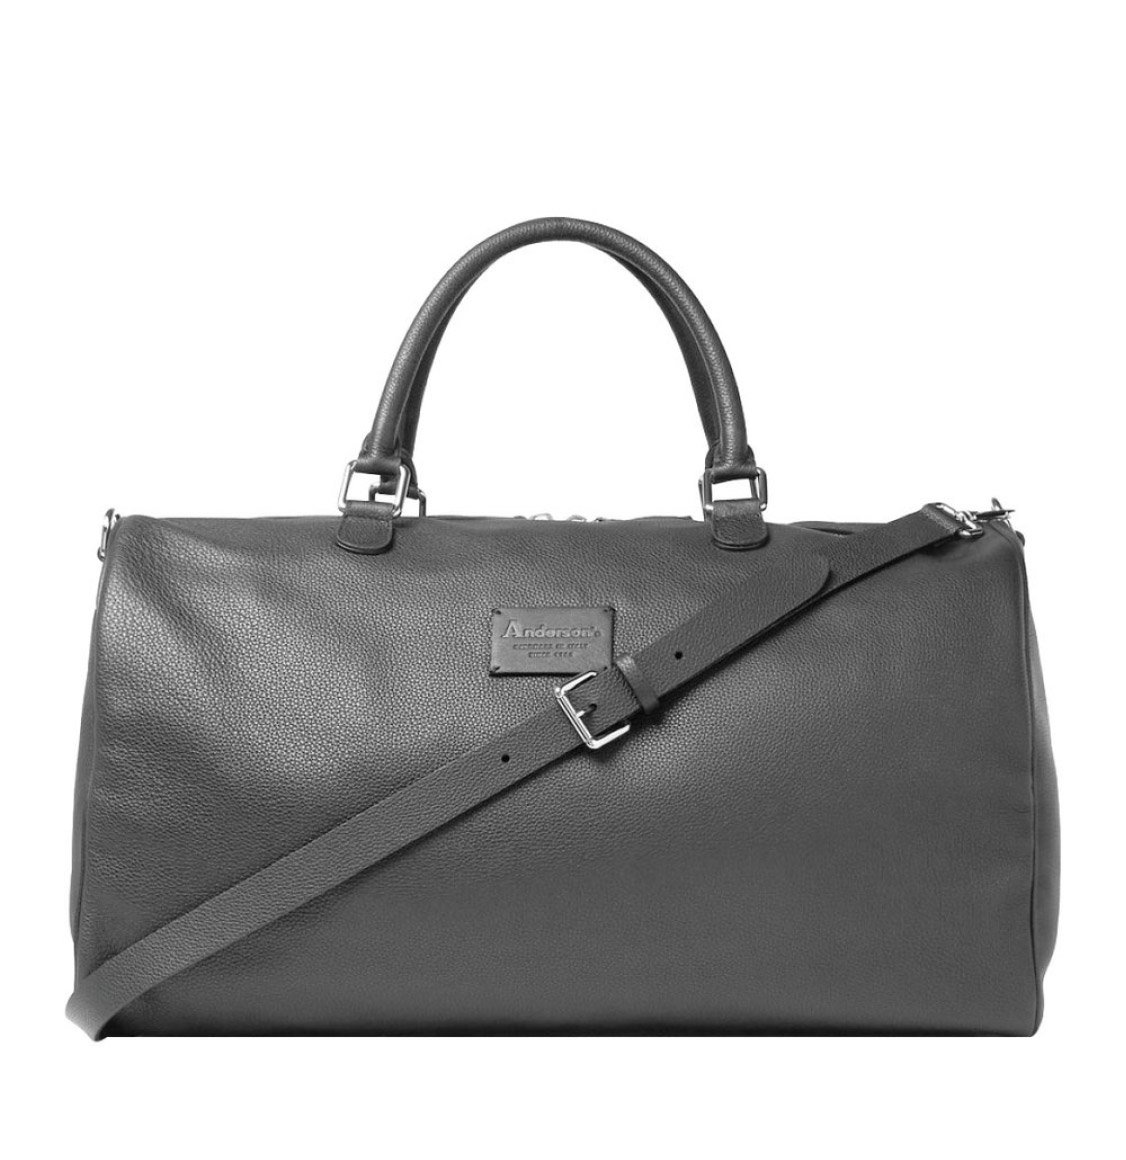 Anderson's Full-Grain Holdall All Leather